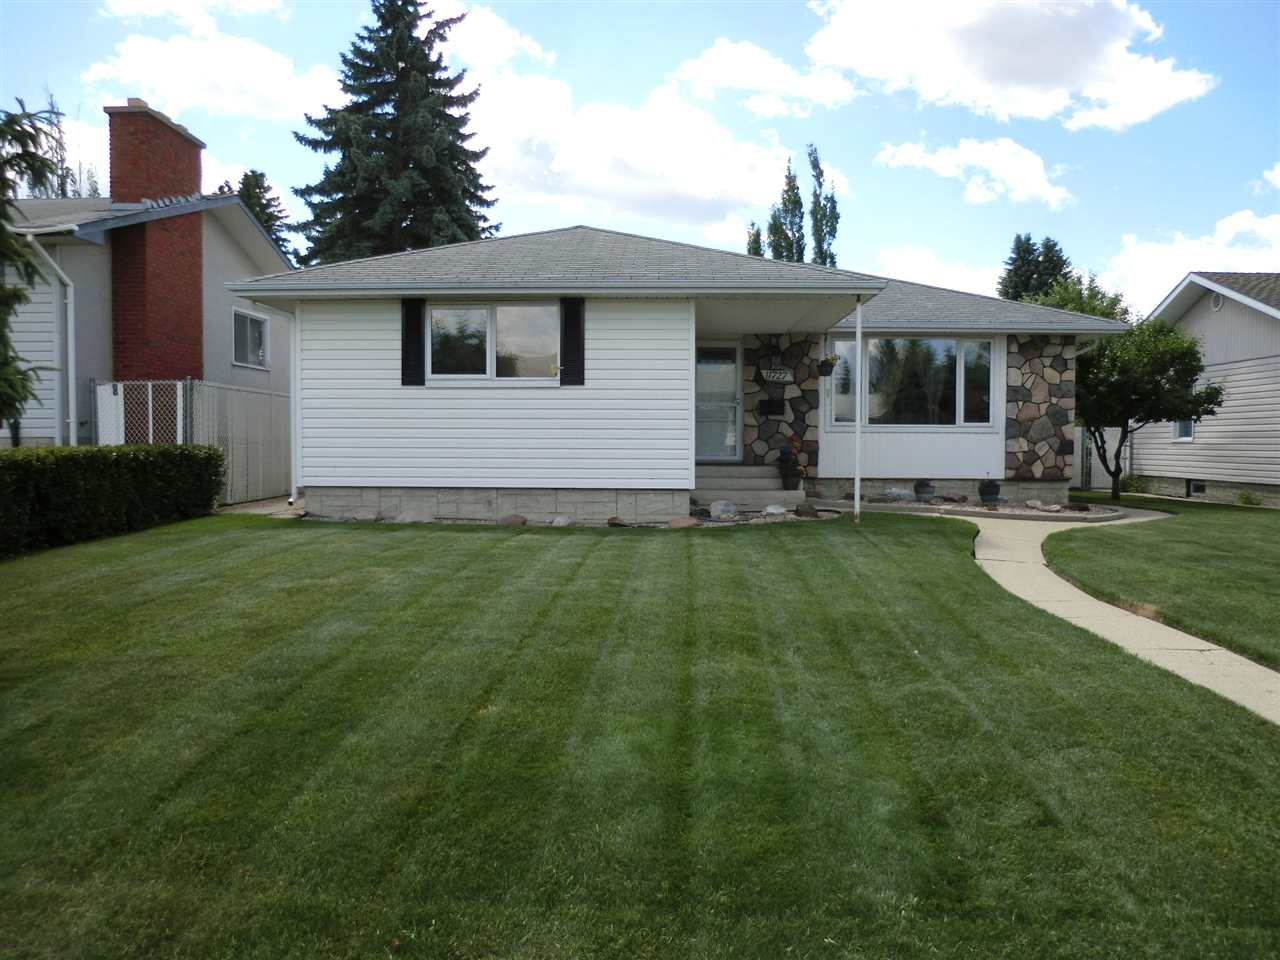 Main Photo: 11727 38A Avenue in Edmonton: Zone 16 House for sale : MLS® # E4070640